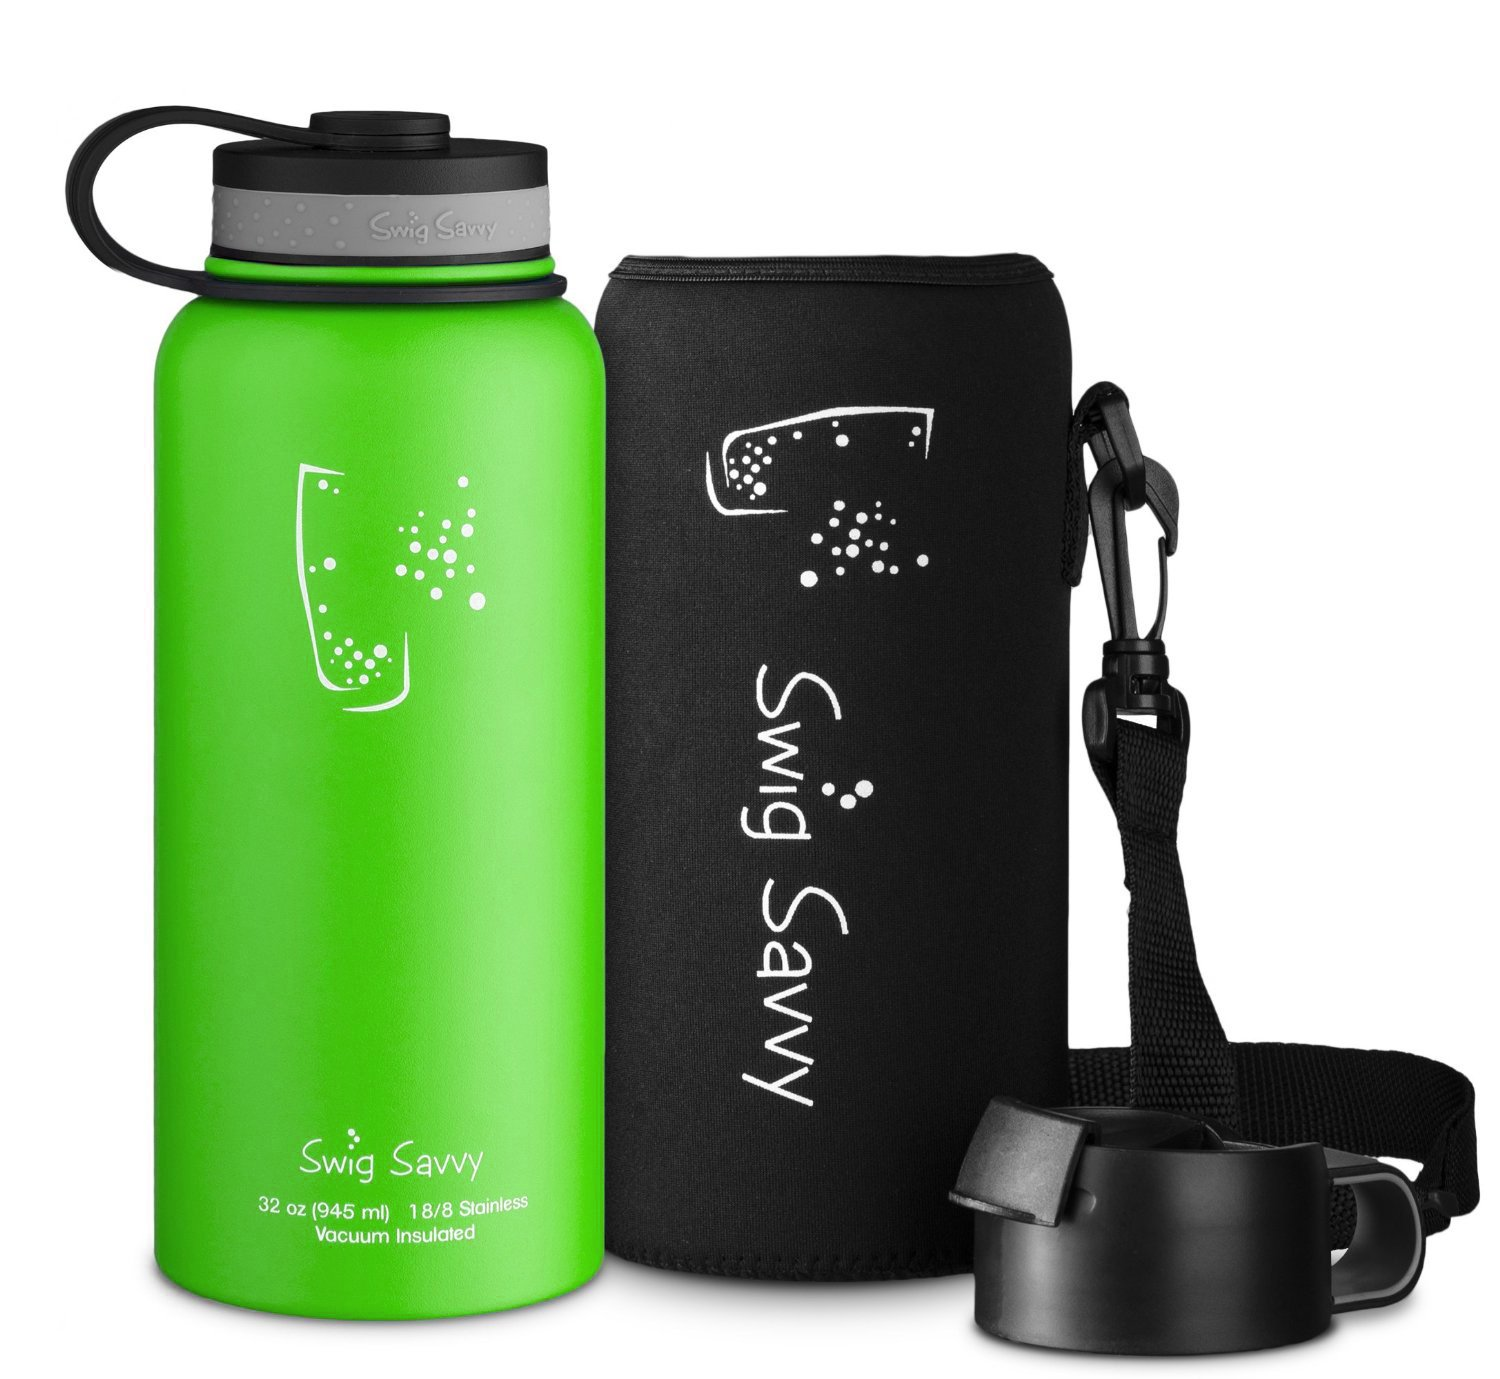 13eb222132 SWIG SAVVY Stainless Steel Water Bottle - Vacuum Insulated & Wide Mouth  Design - Reusable Sweat Proof Thermos Flask for Hot & Cold Drinks with  Coffee Lid ...